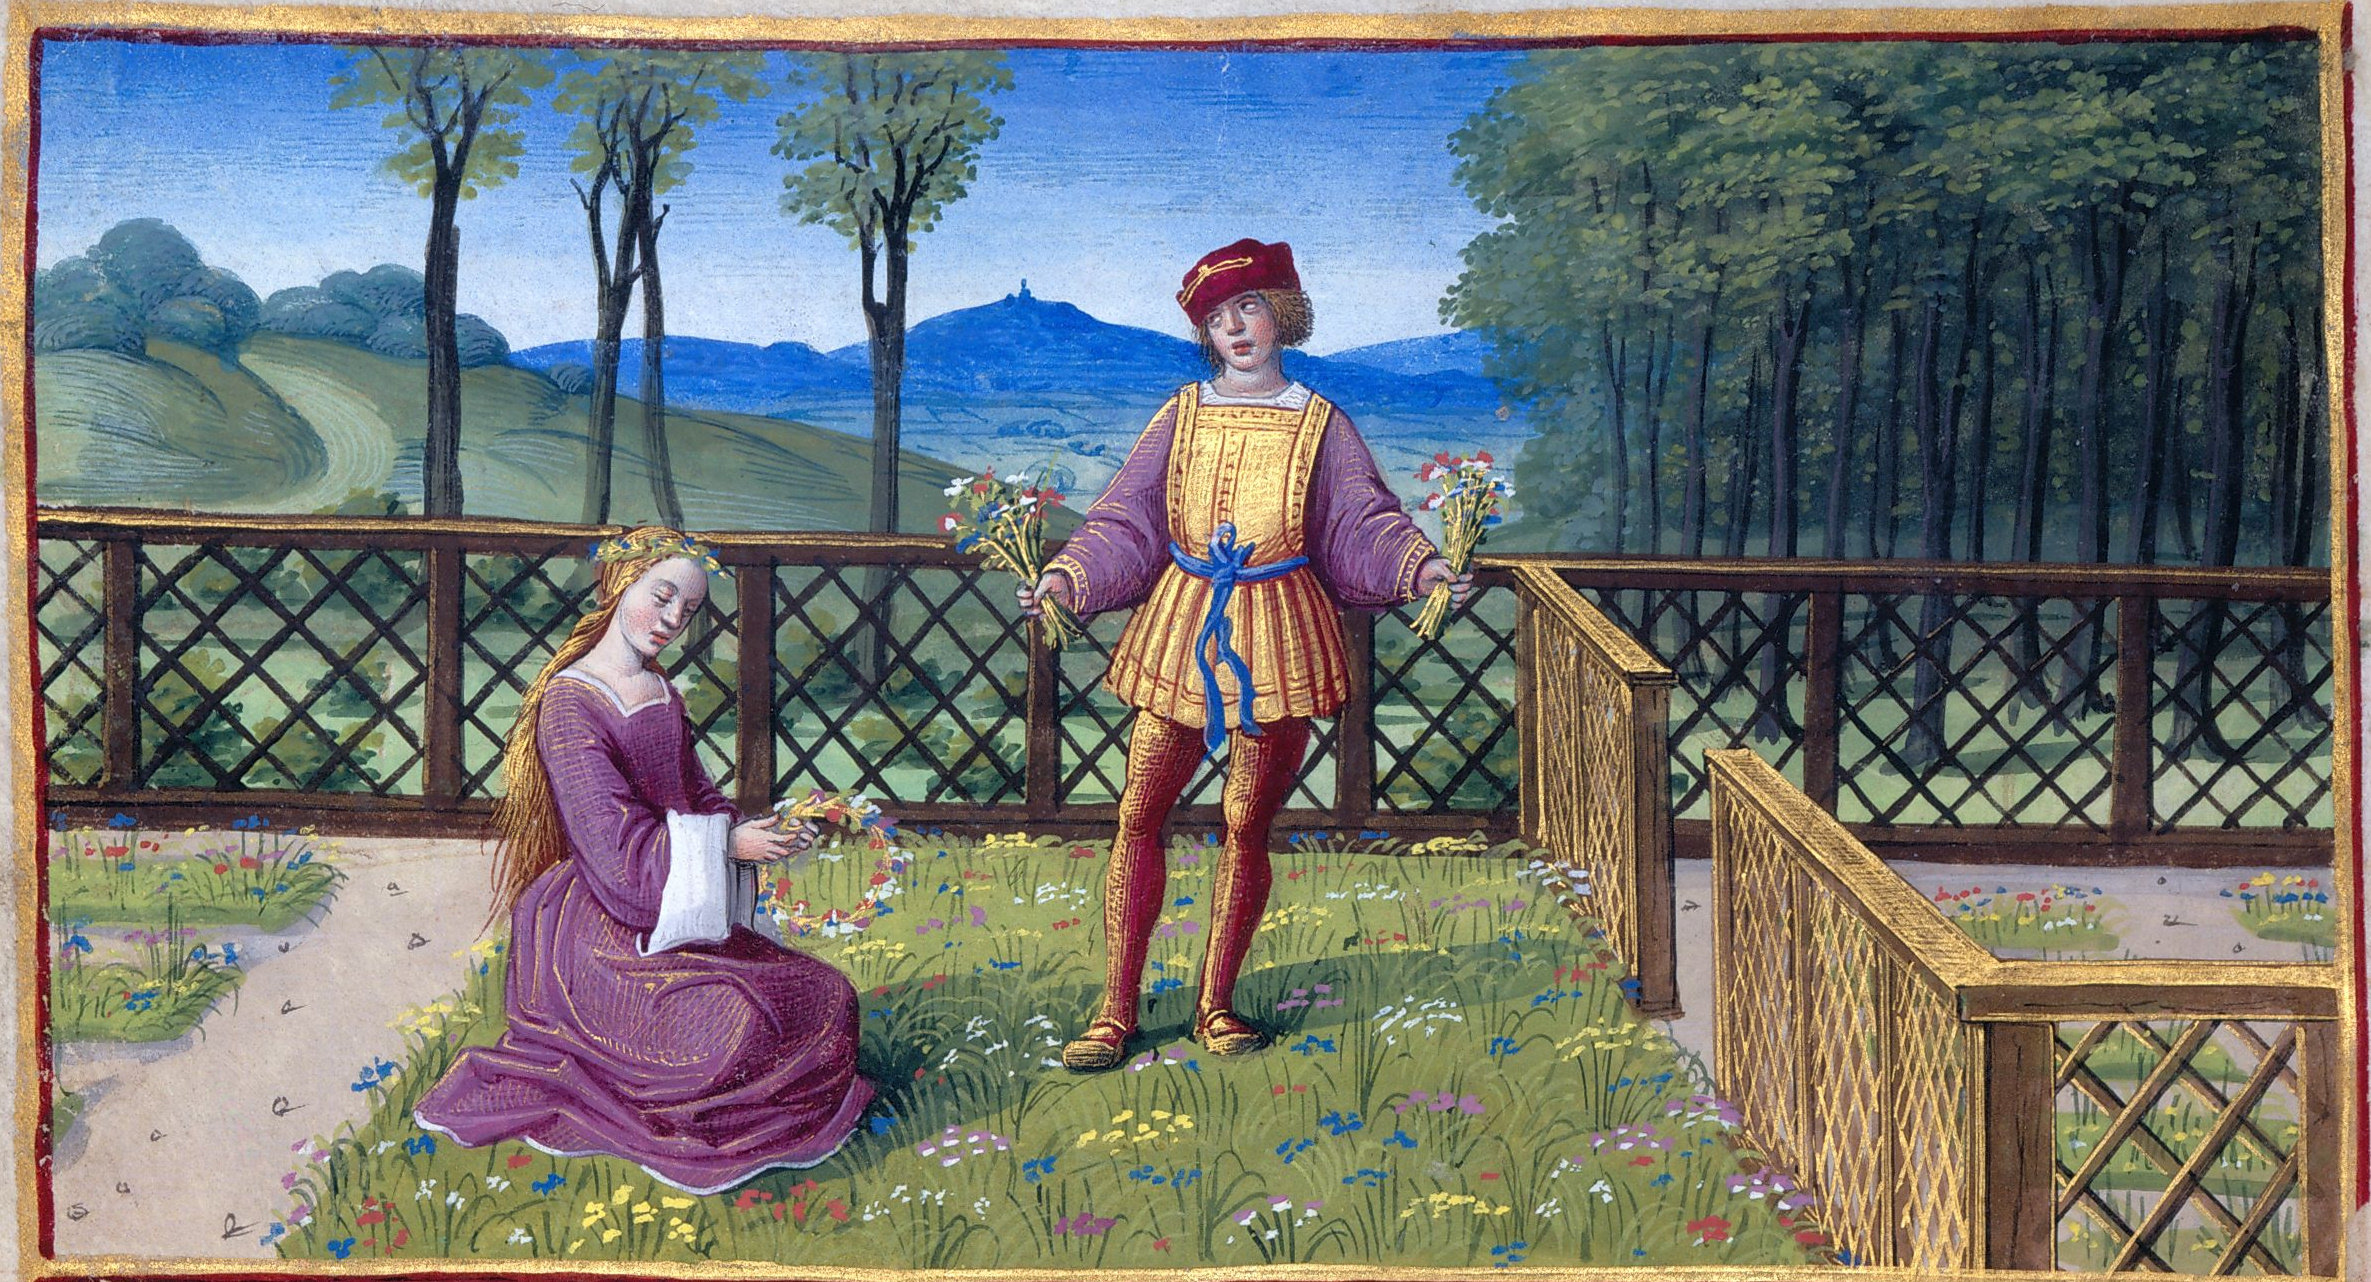 1500 - Book of Hours by Jean Poyer, known as The Hours of Henry VIII - April: Picking Flowers and Making Wreaths